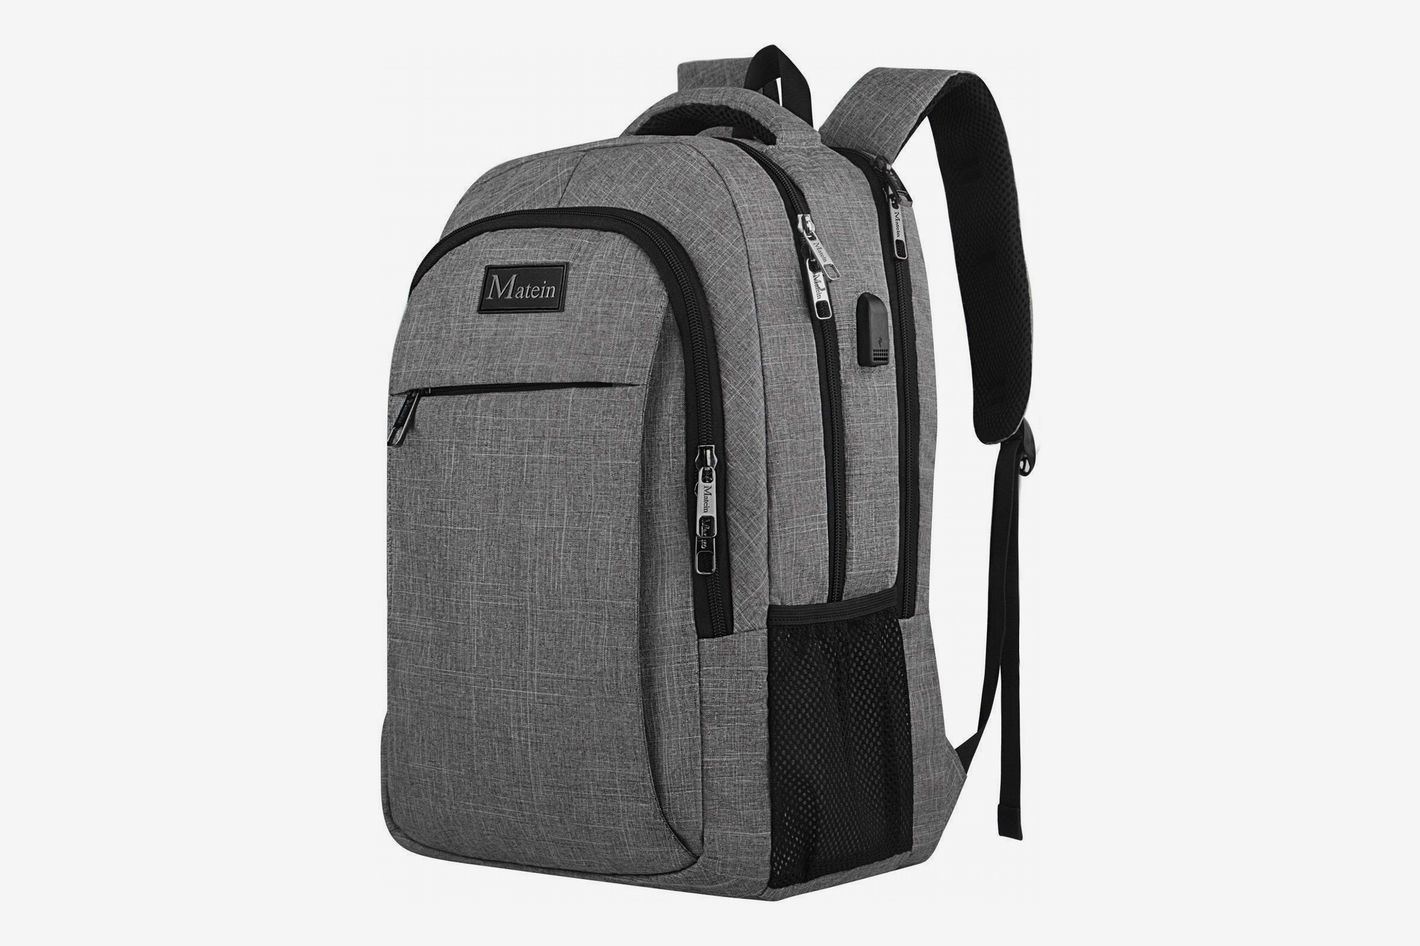 020ce736242 Matein Travel Laptop Backpack